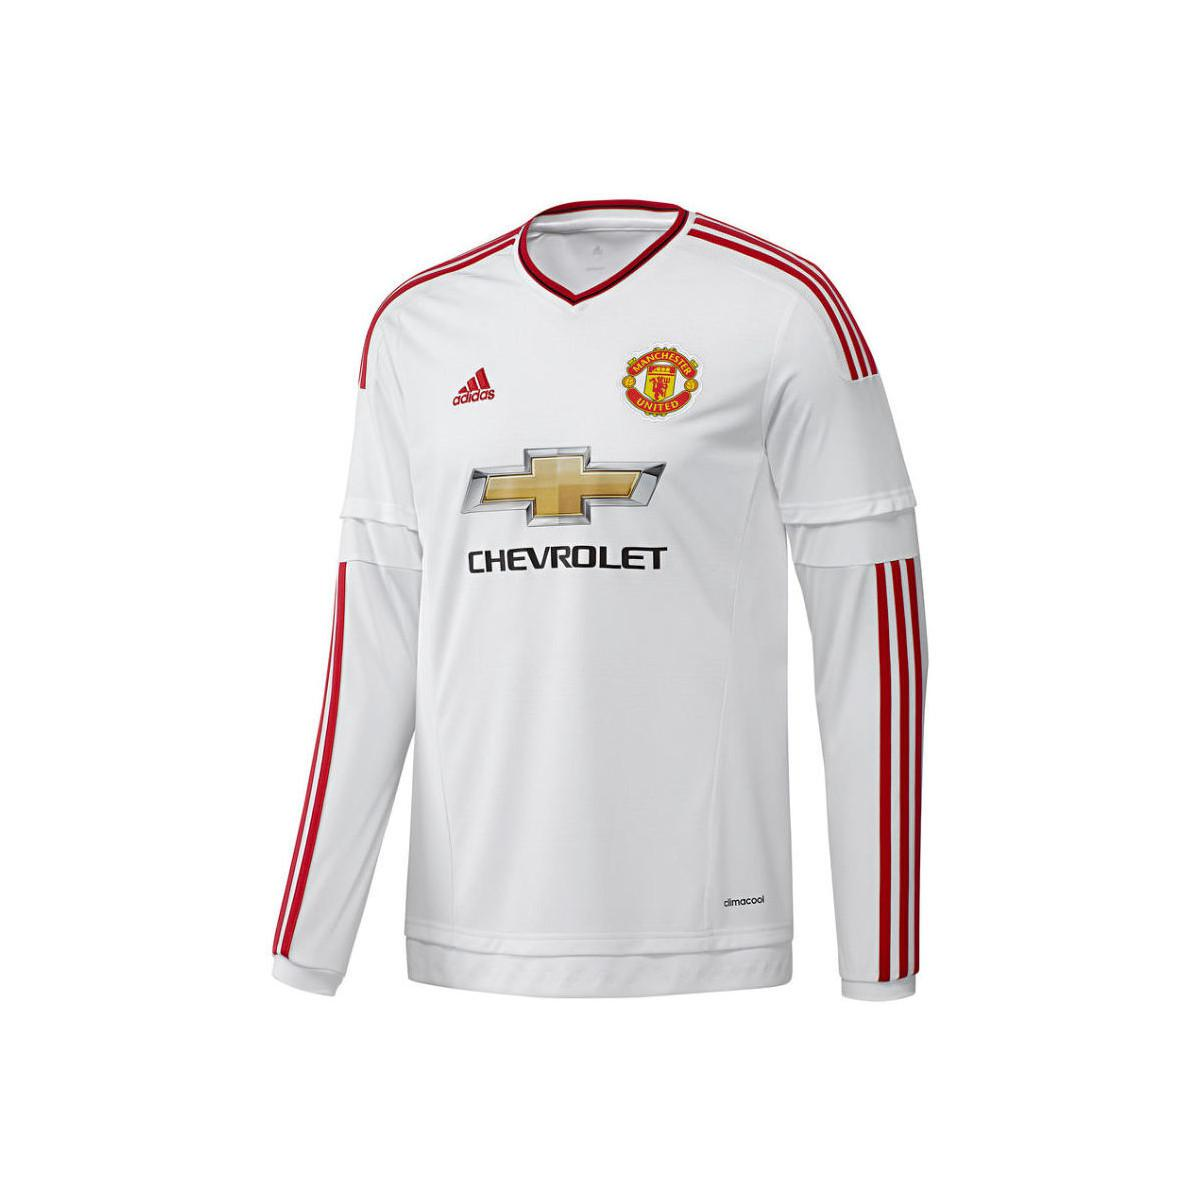 6cfccf3de46 Man Utd Adidas Shirt 2015 – EDGE Engineering and Consulting Limited